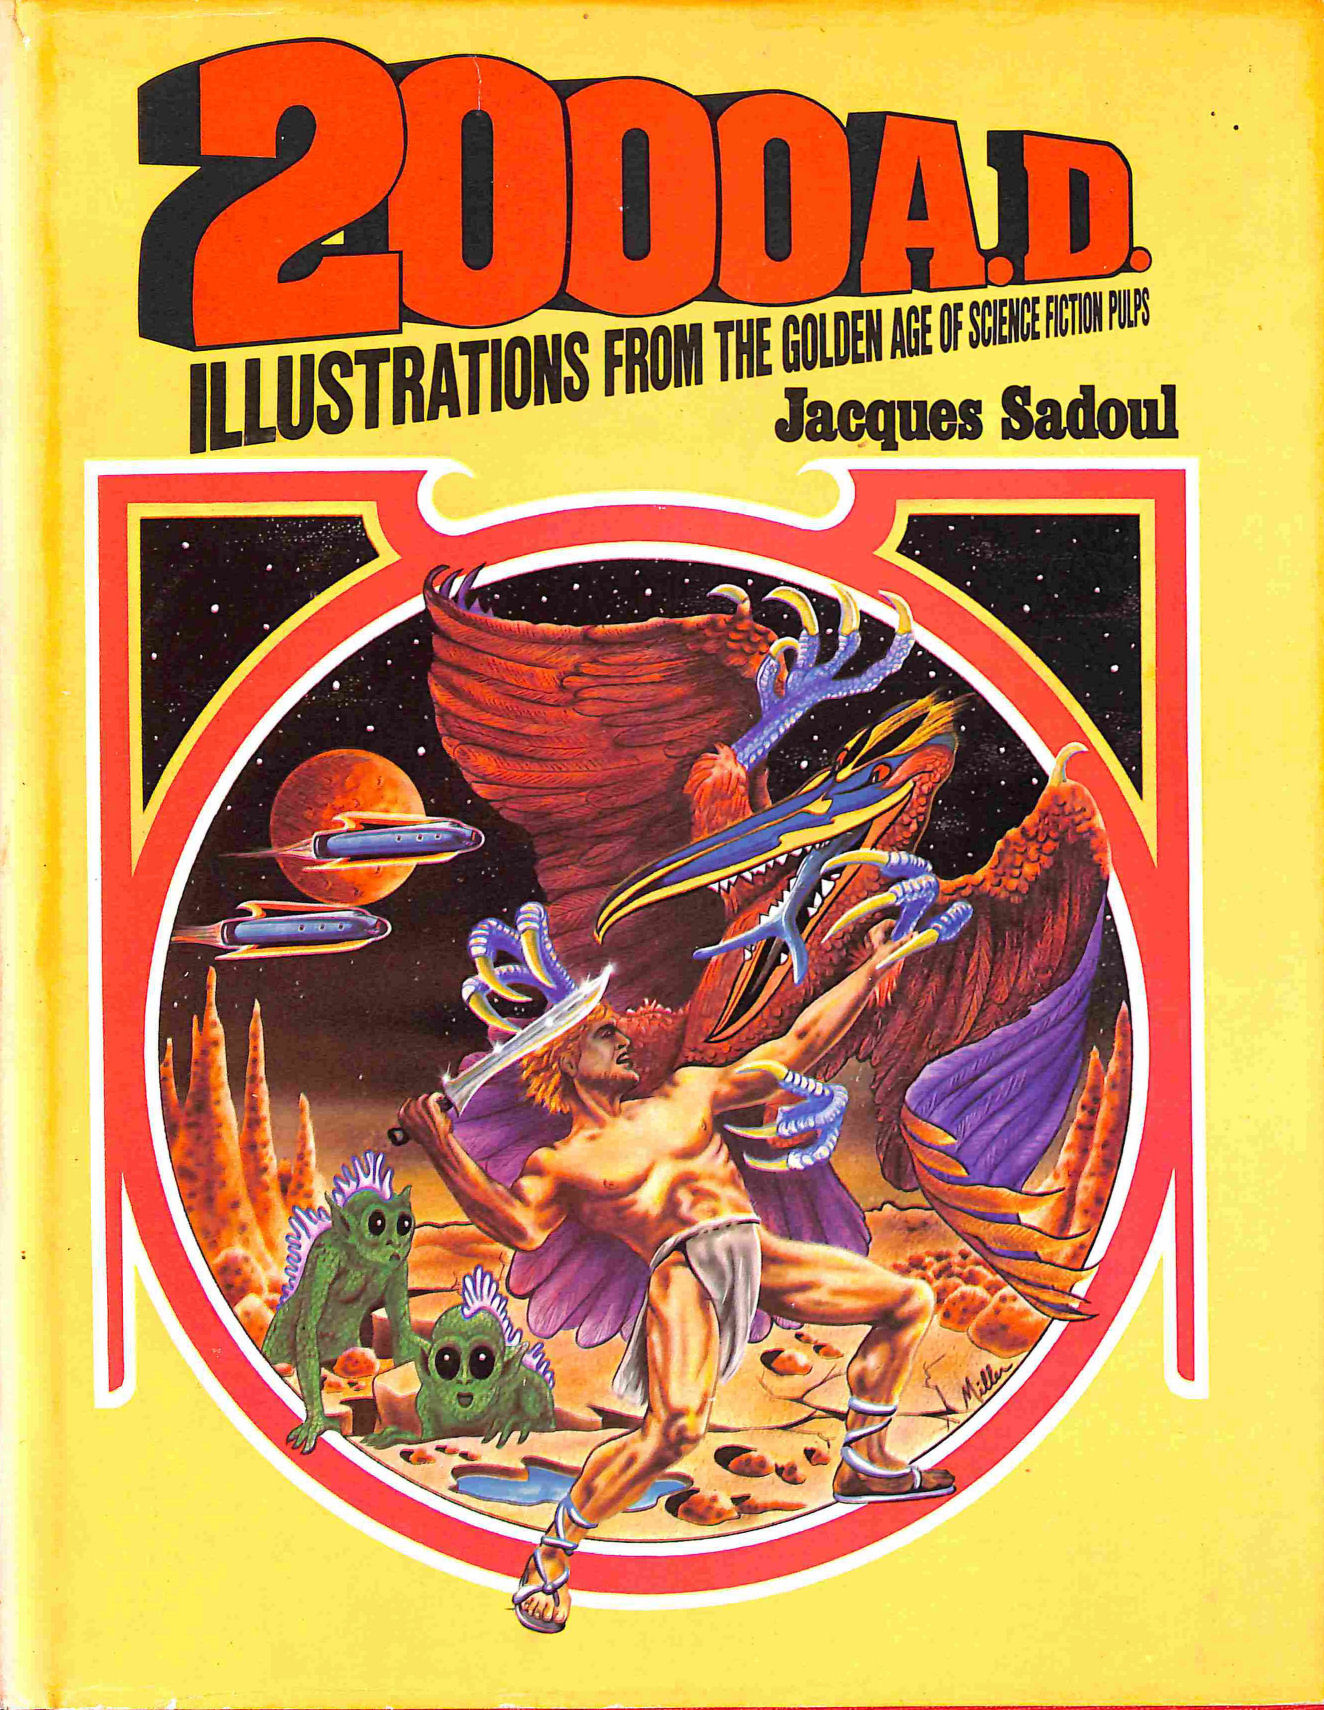 Image for 2000 AD Illustrations from the Golden Age of Scien